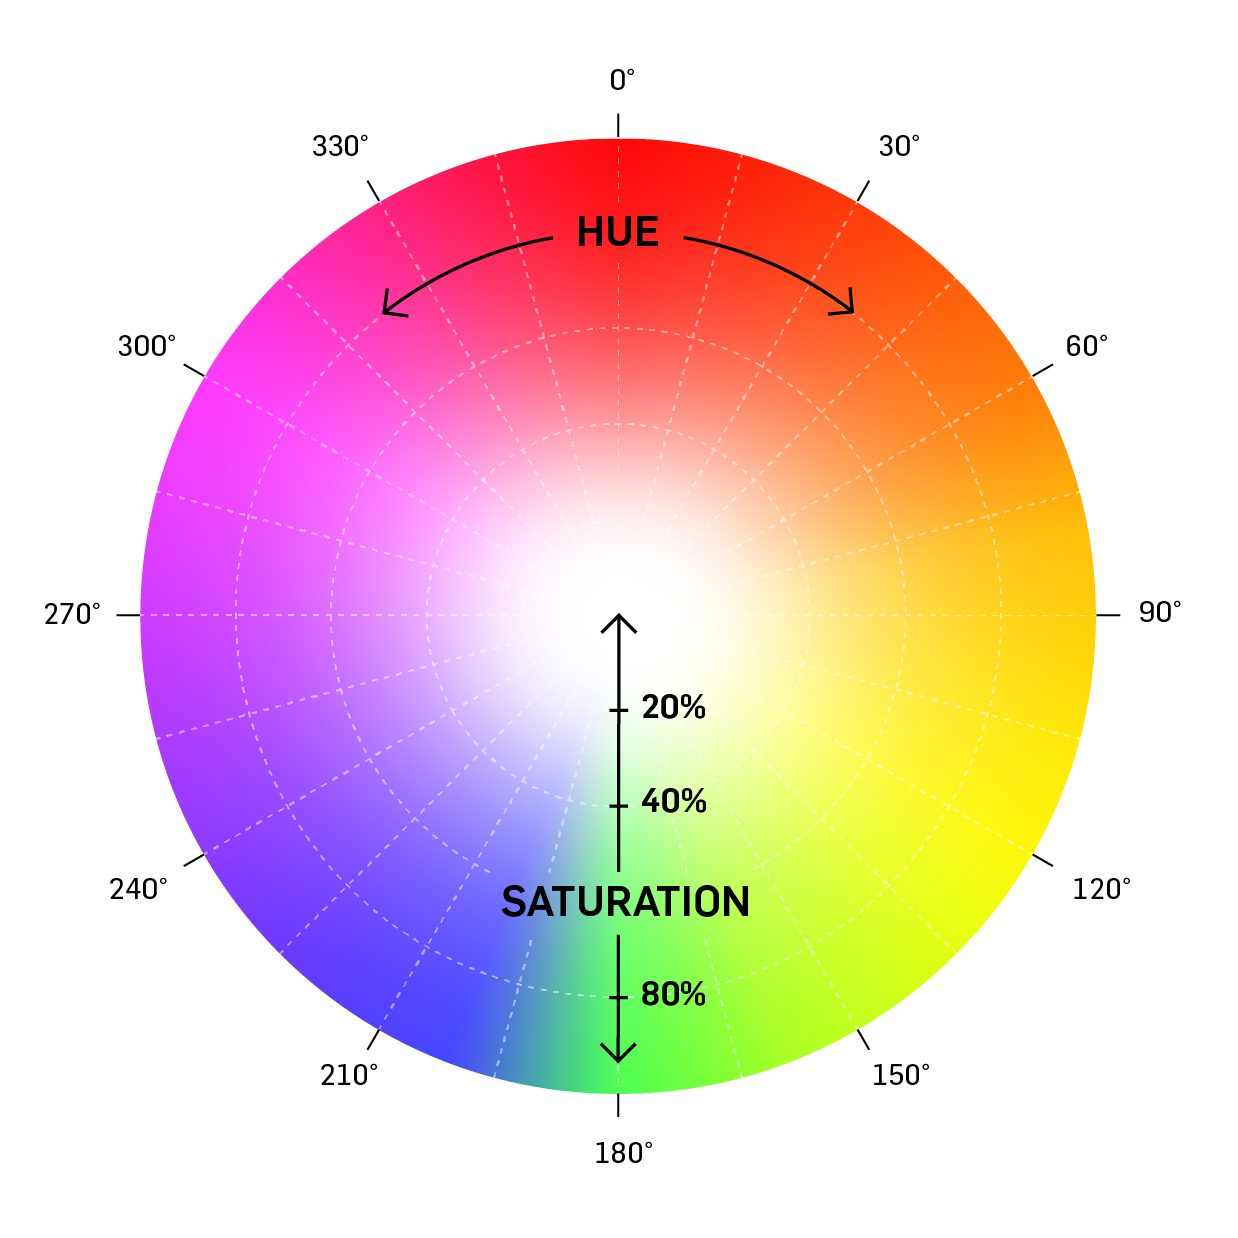 Hive Lighting Built Bright Diagram Tool For Any Production Scenario Perfect Shot Can Be Accessed On The Fixture Itself Or Remotely Via Dmx Free Smartphone App